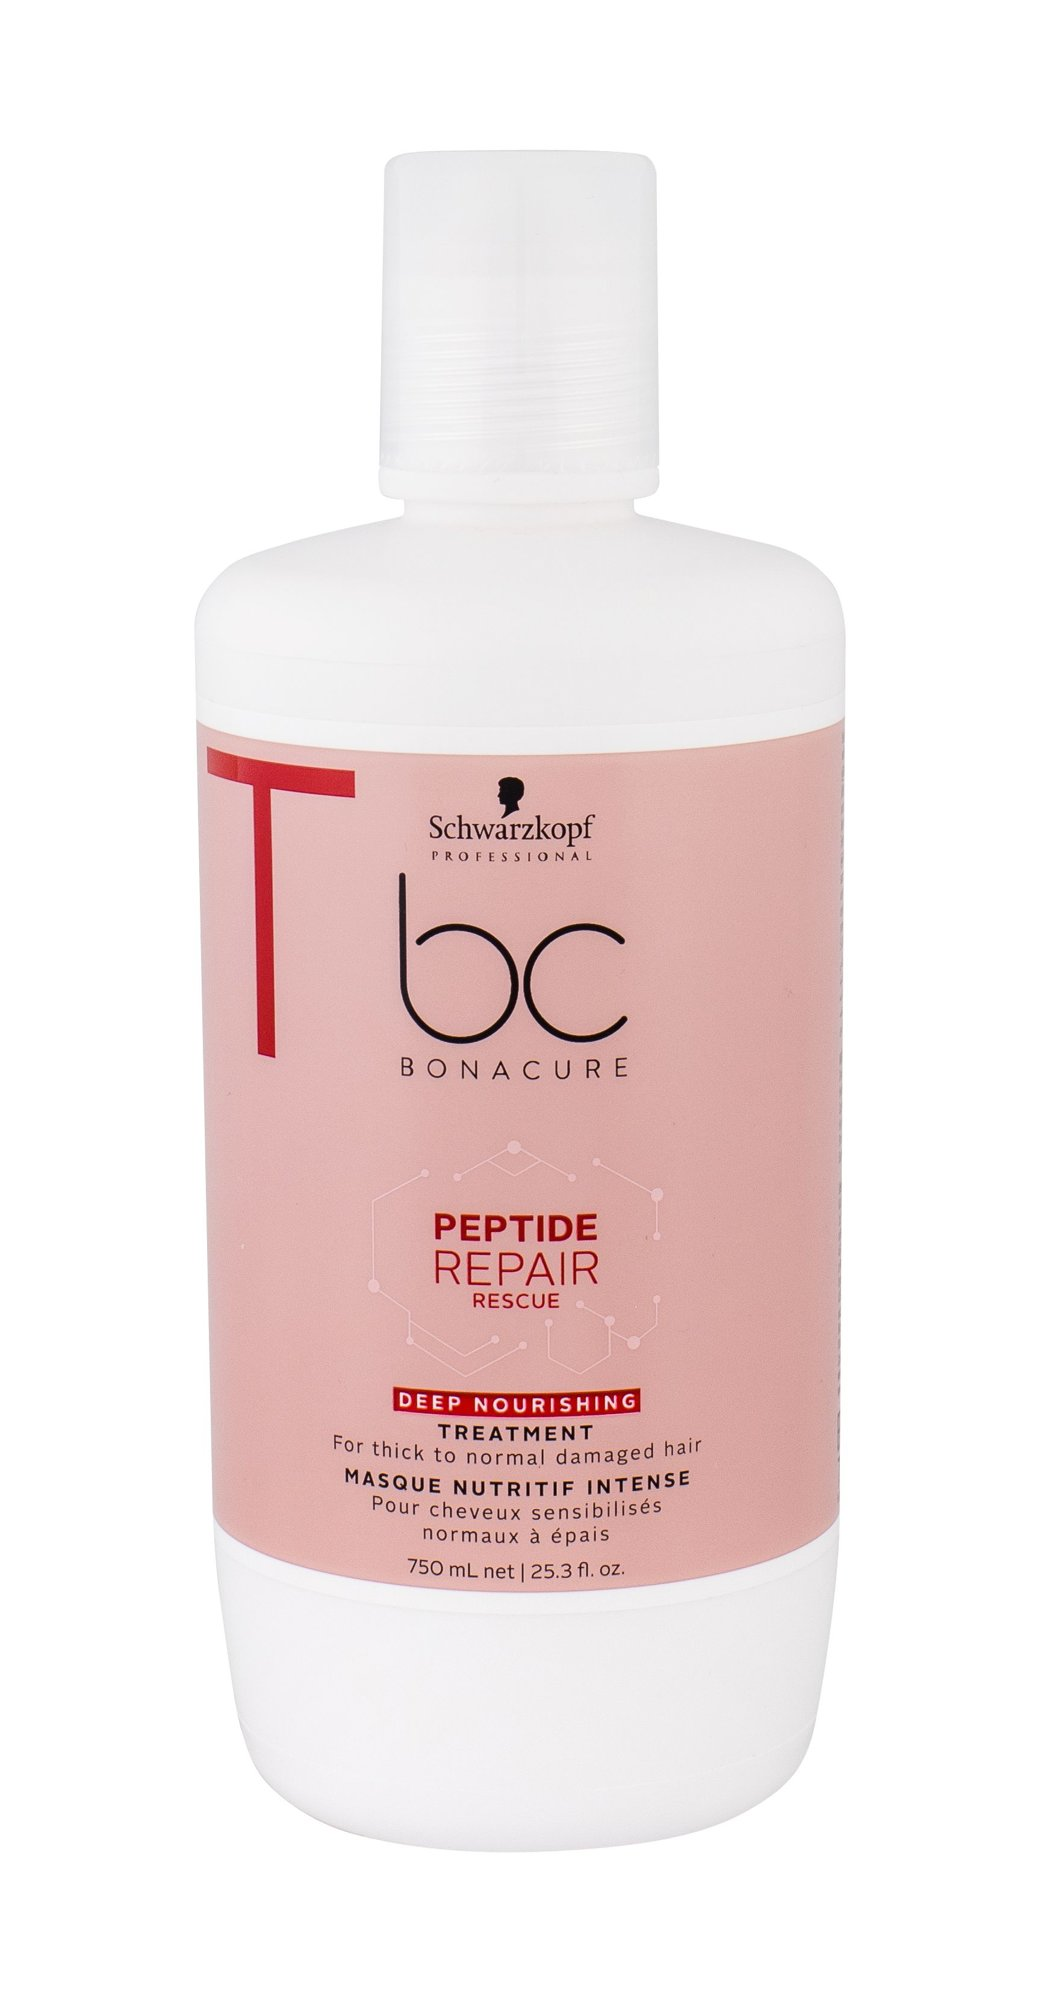 Schwarzkopf BC Bonacure Peptide Repair Rescue Hair Mask 750ml